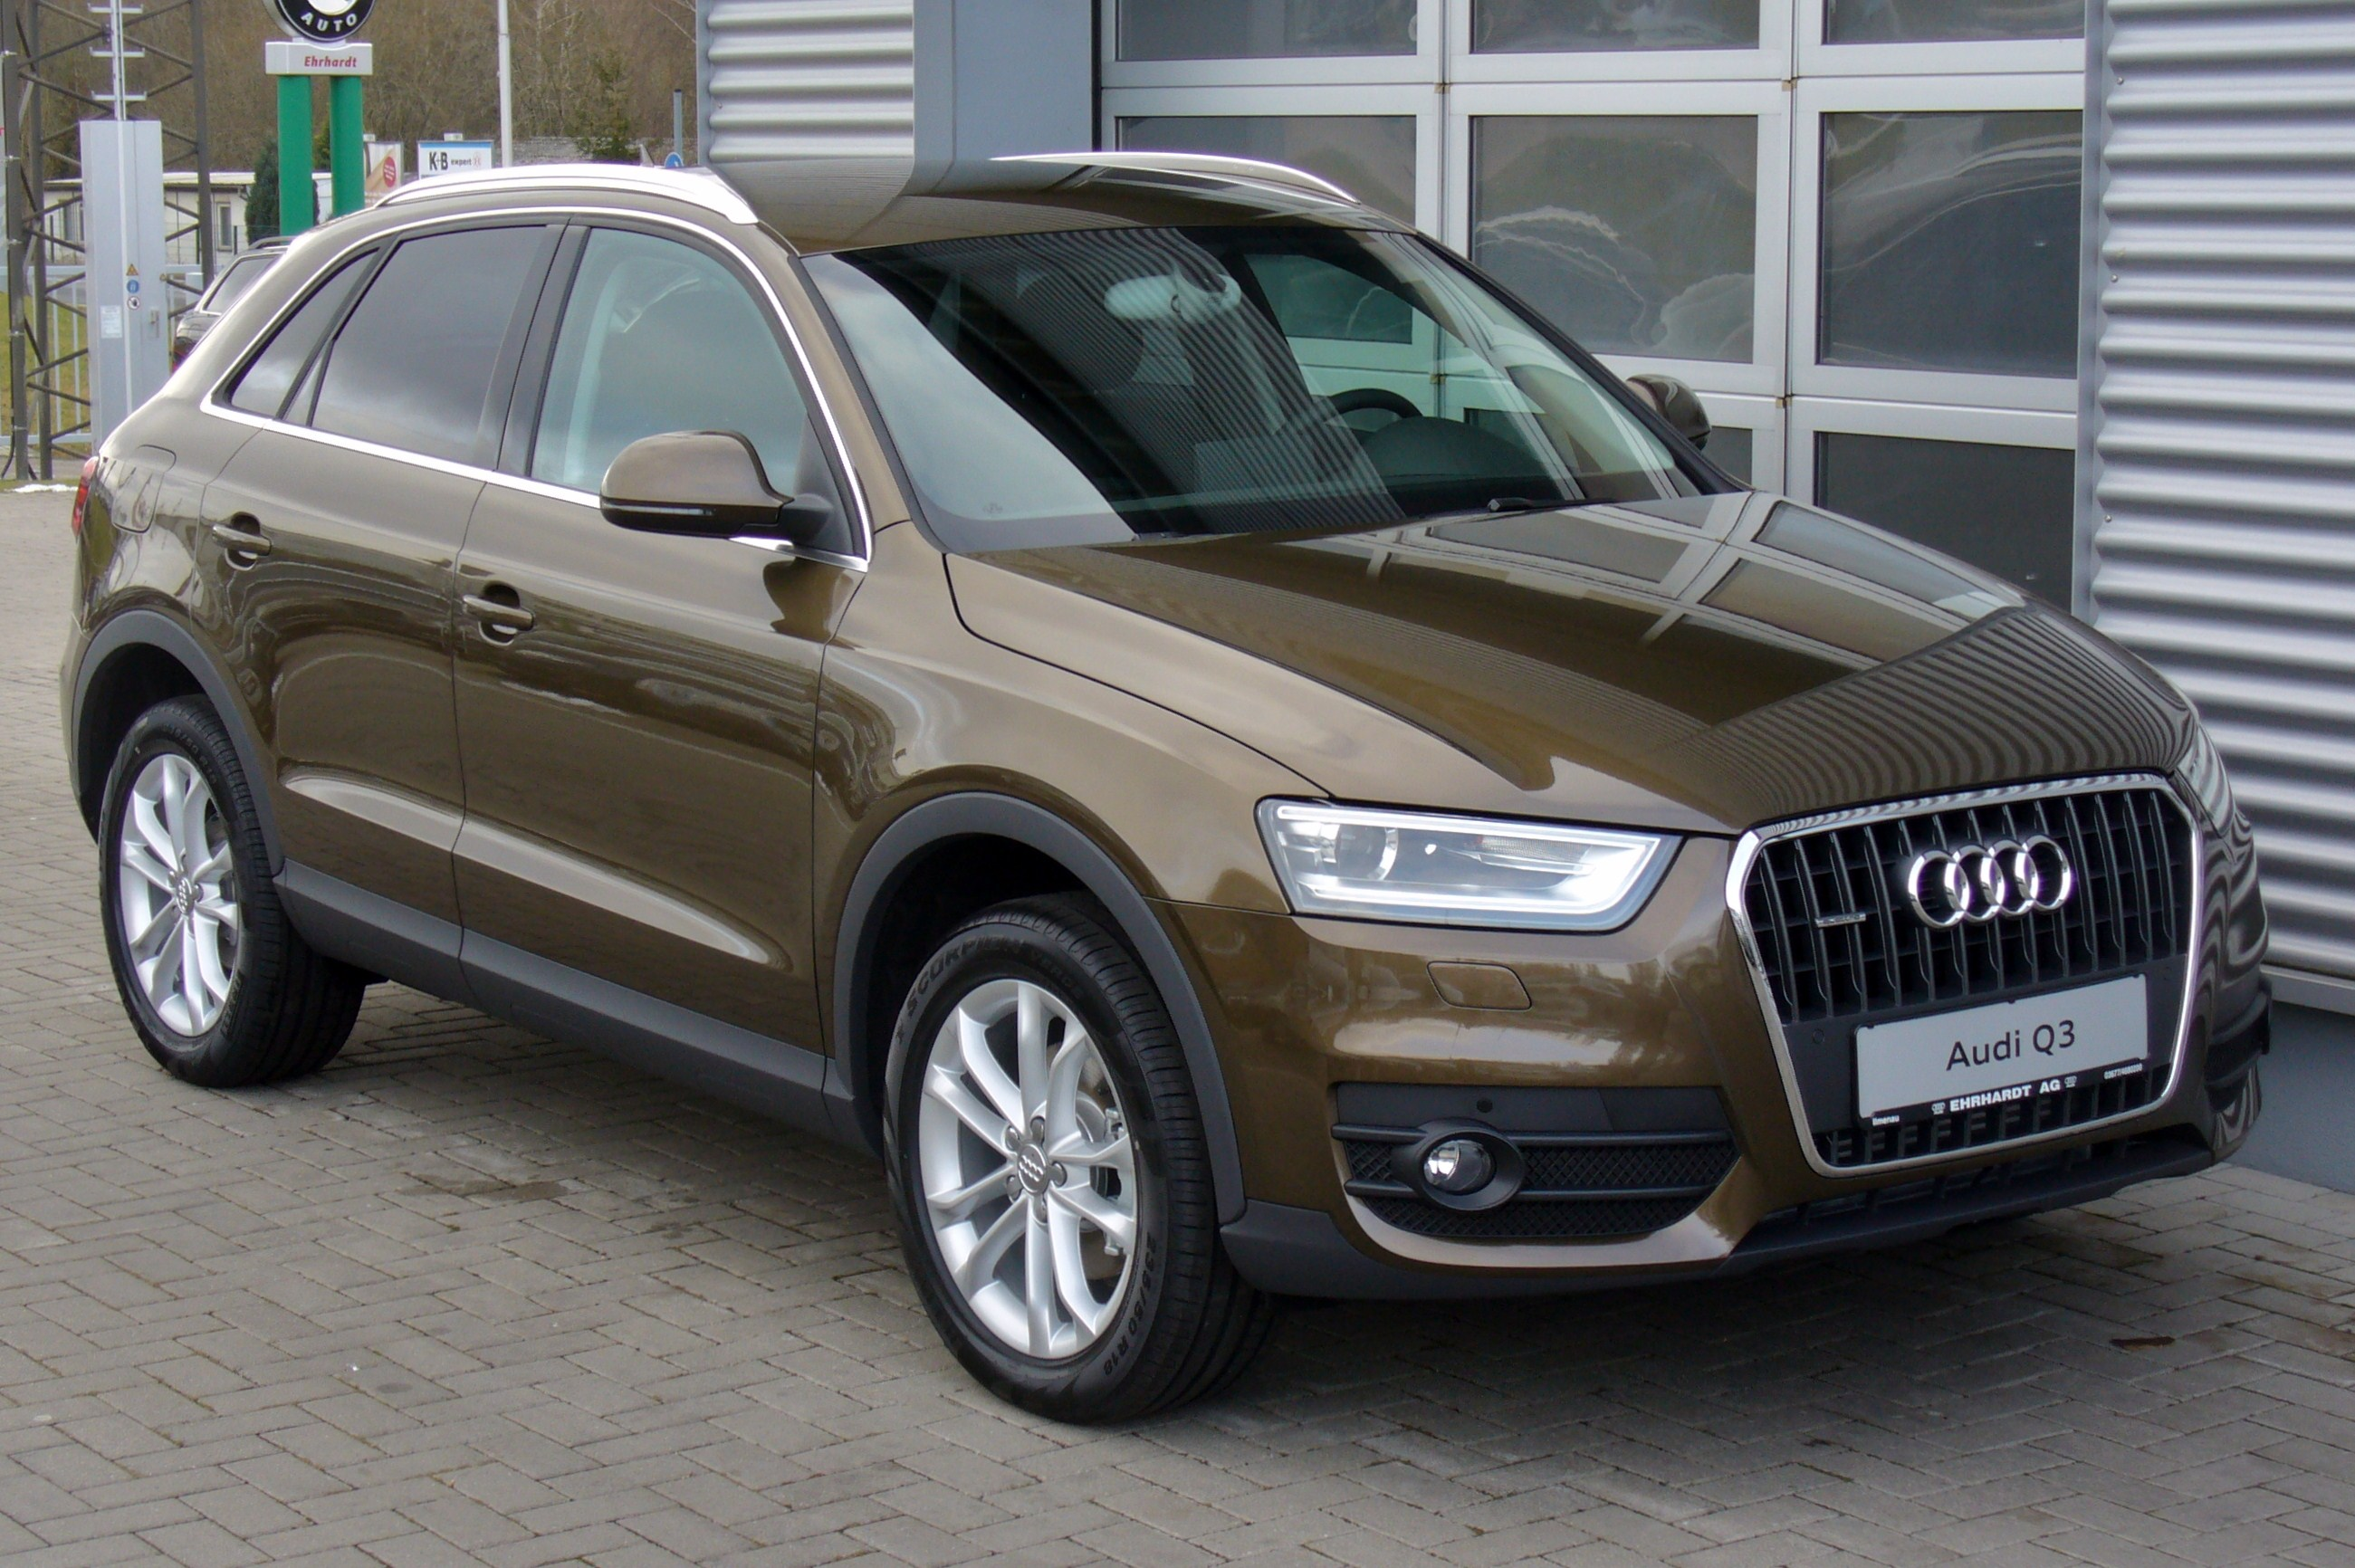 audi q3 2 0 tdi technical details history photos on. Black Bedroom Furniture Sets. Home Design Ideas